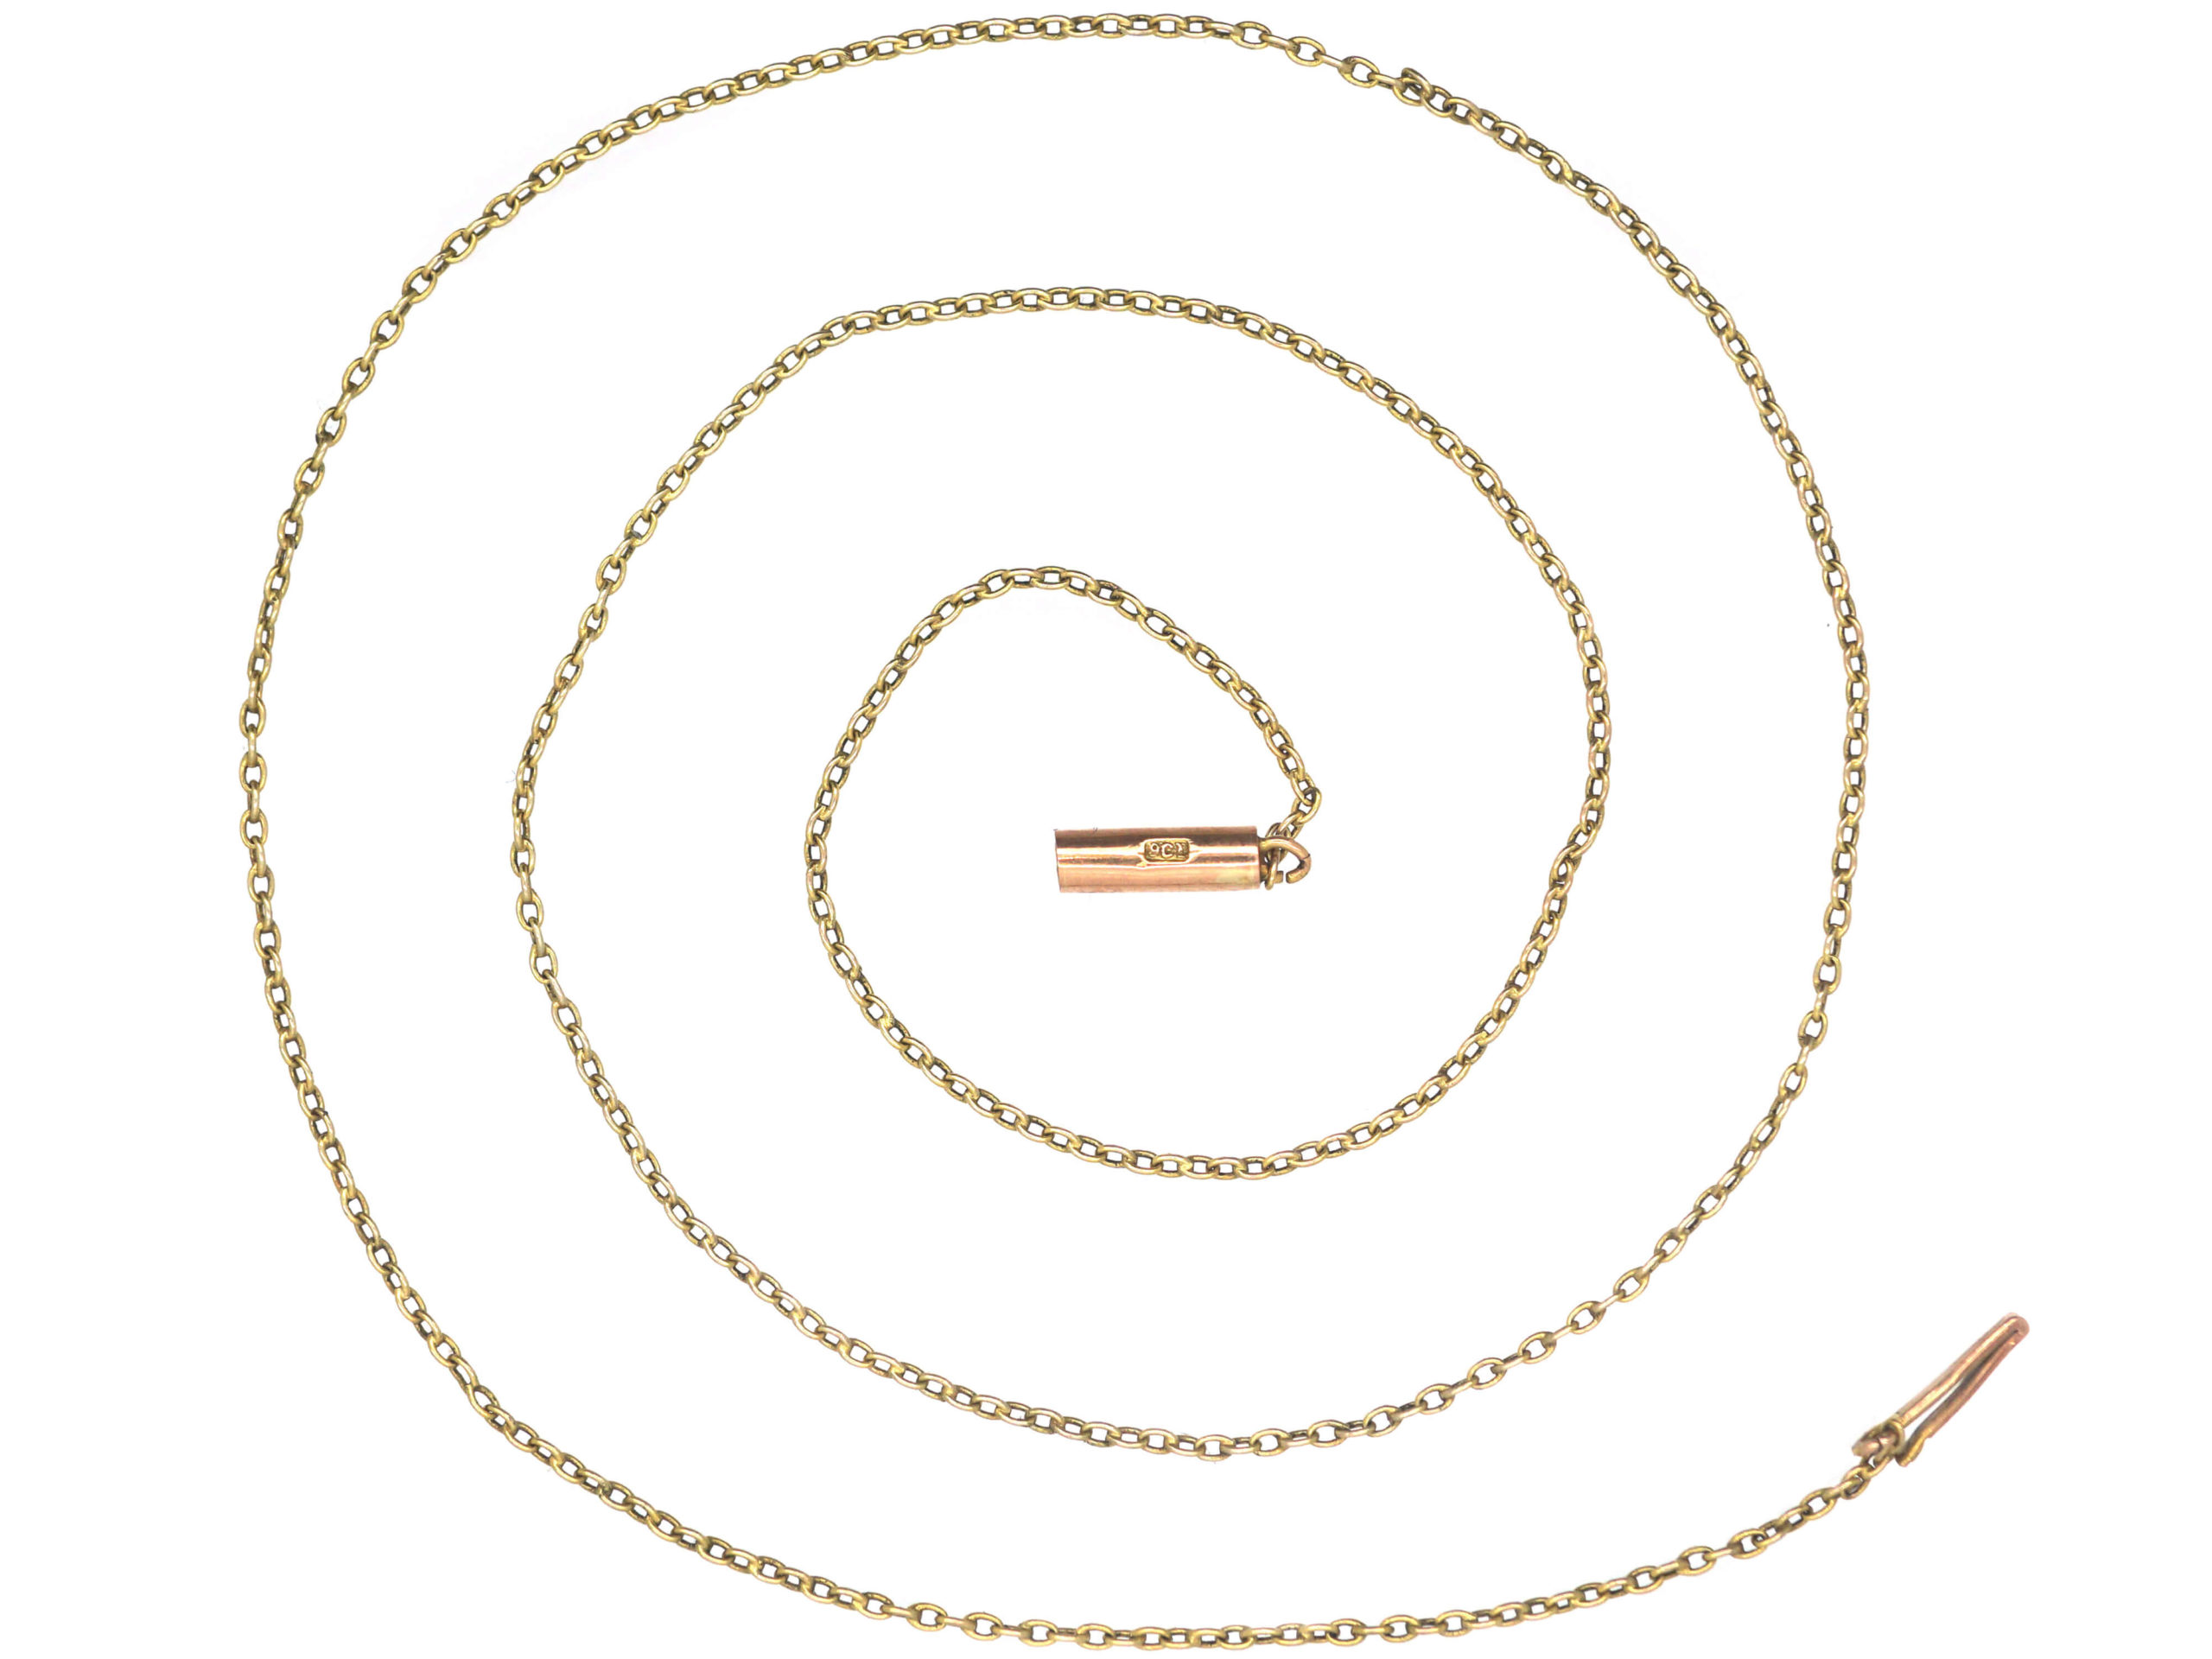 Edwardian Fine 9ct Gold Chain with Barrel Clasp